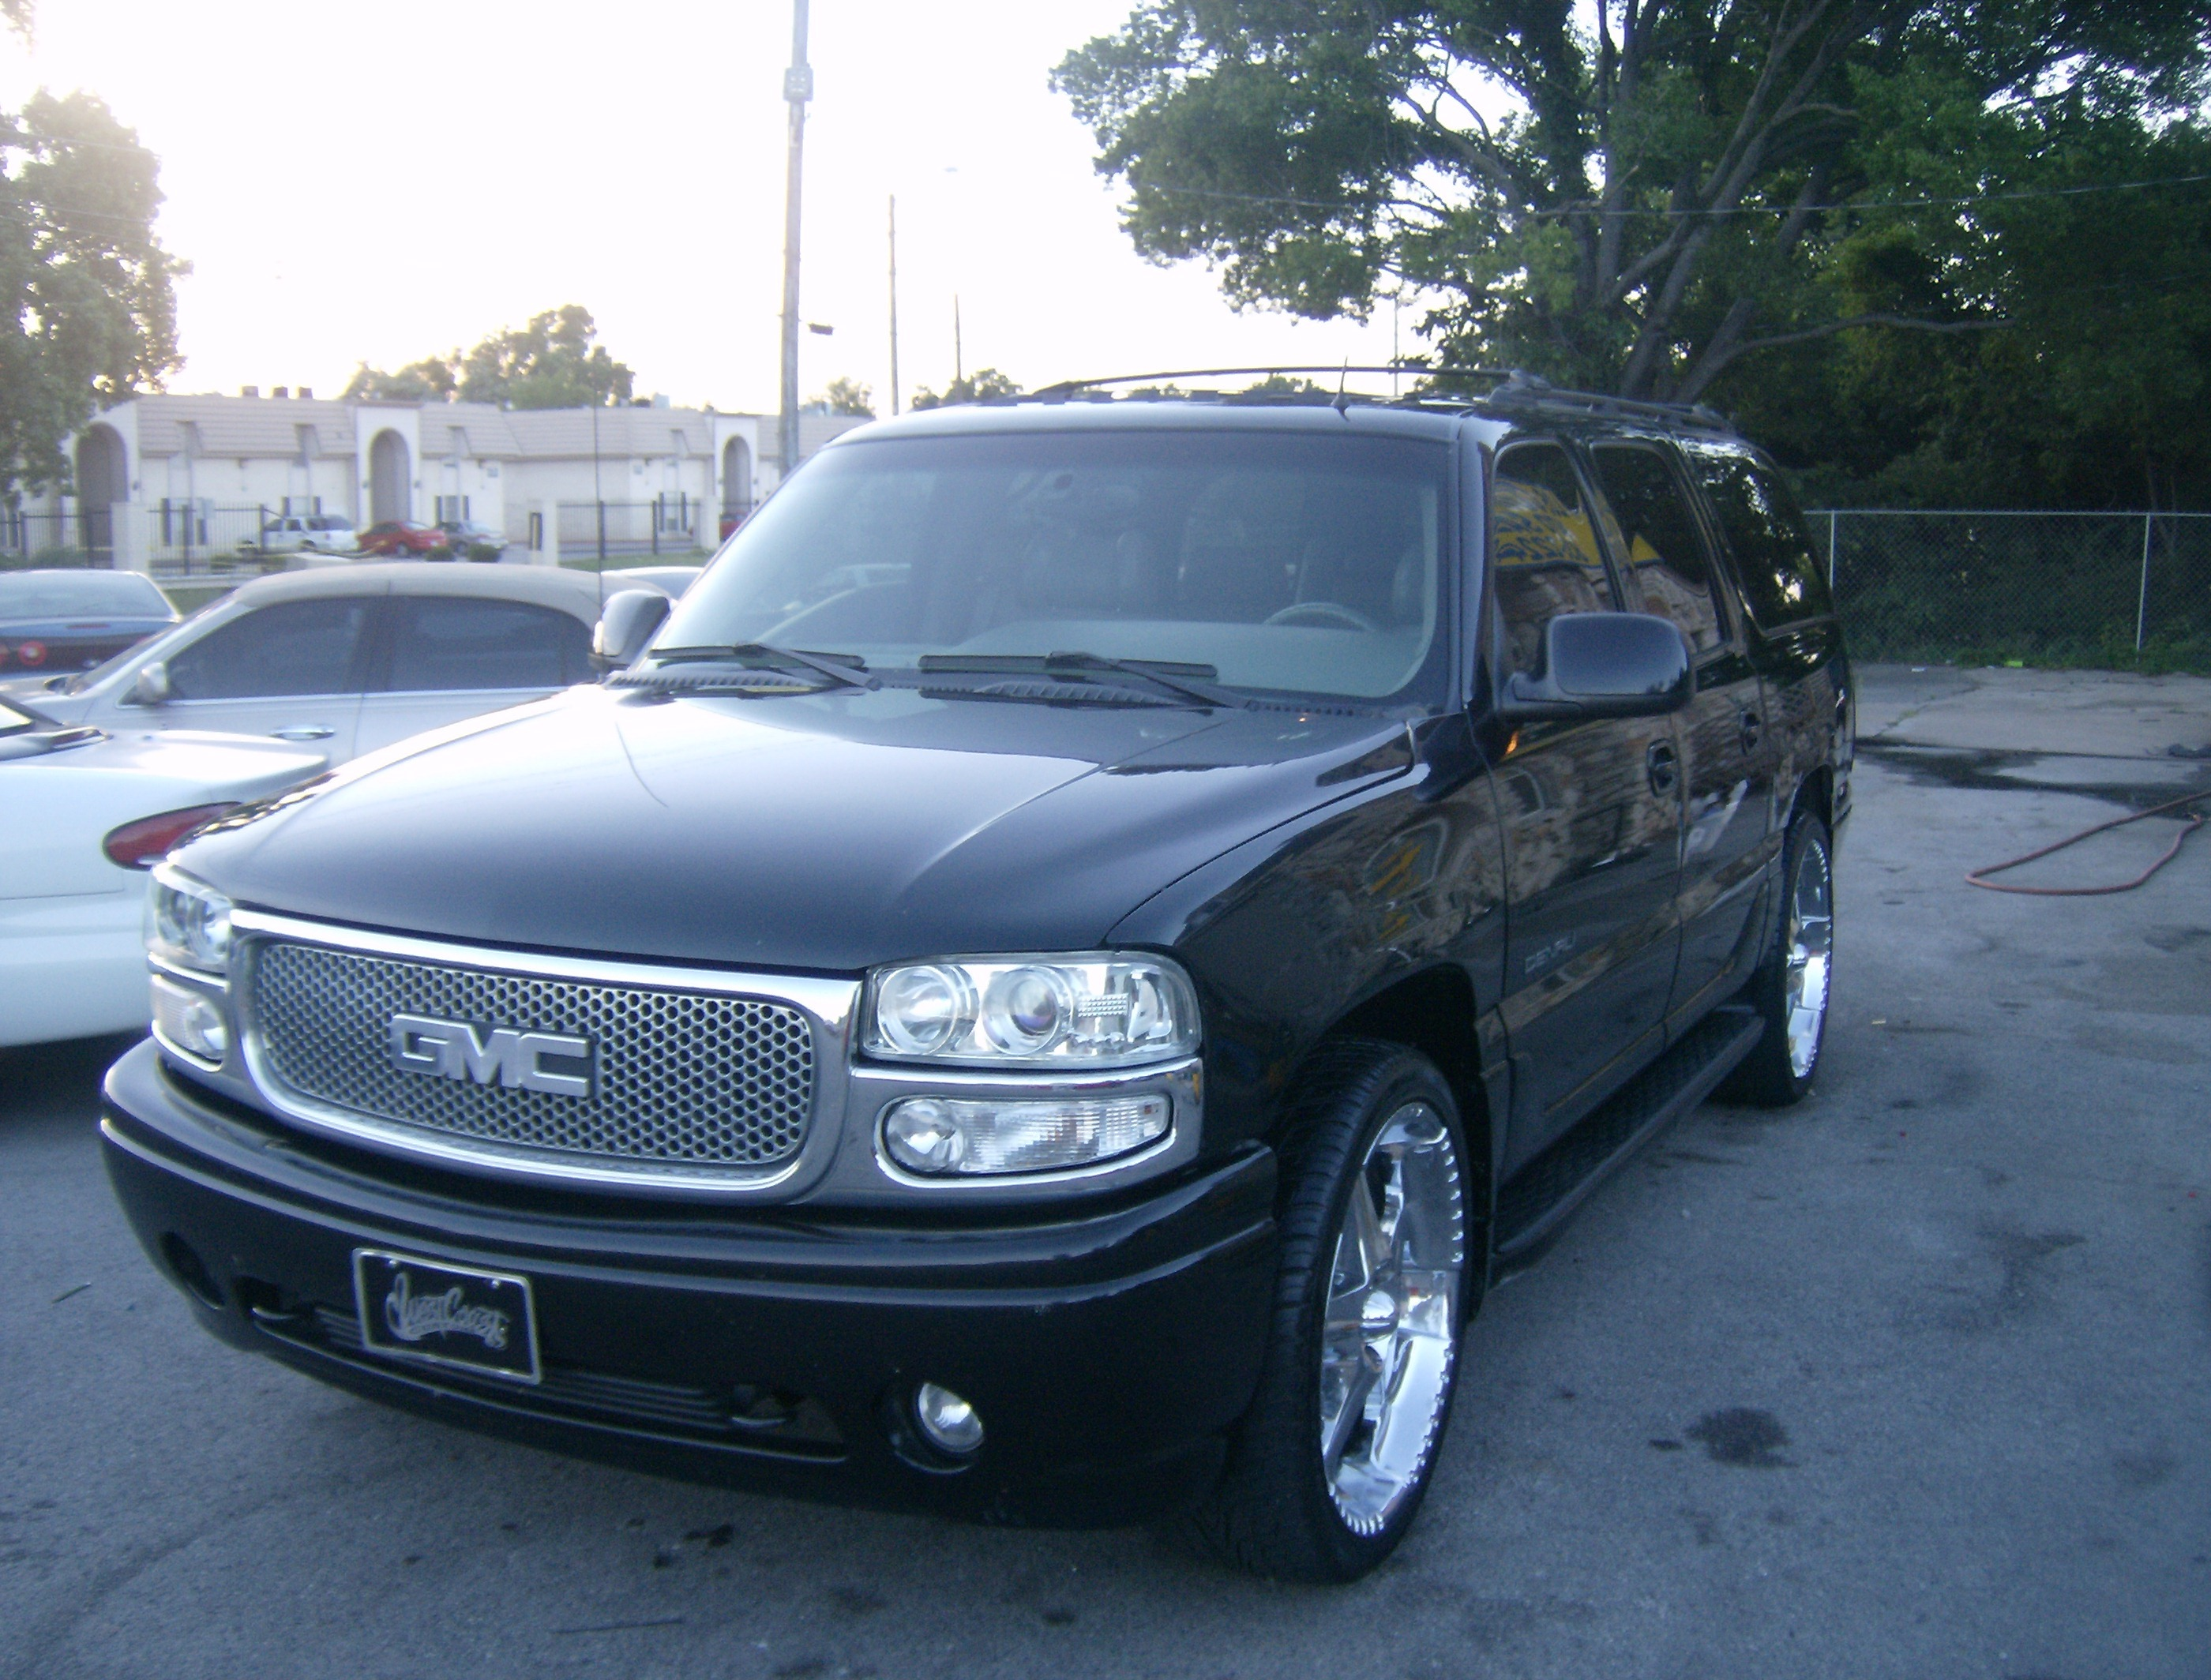 suburbanriding24 2002 gmc yukon denali specs photos. Black Bedroom Furniture Sets. Home Design Ideas